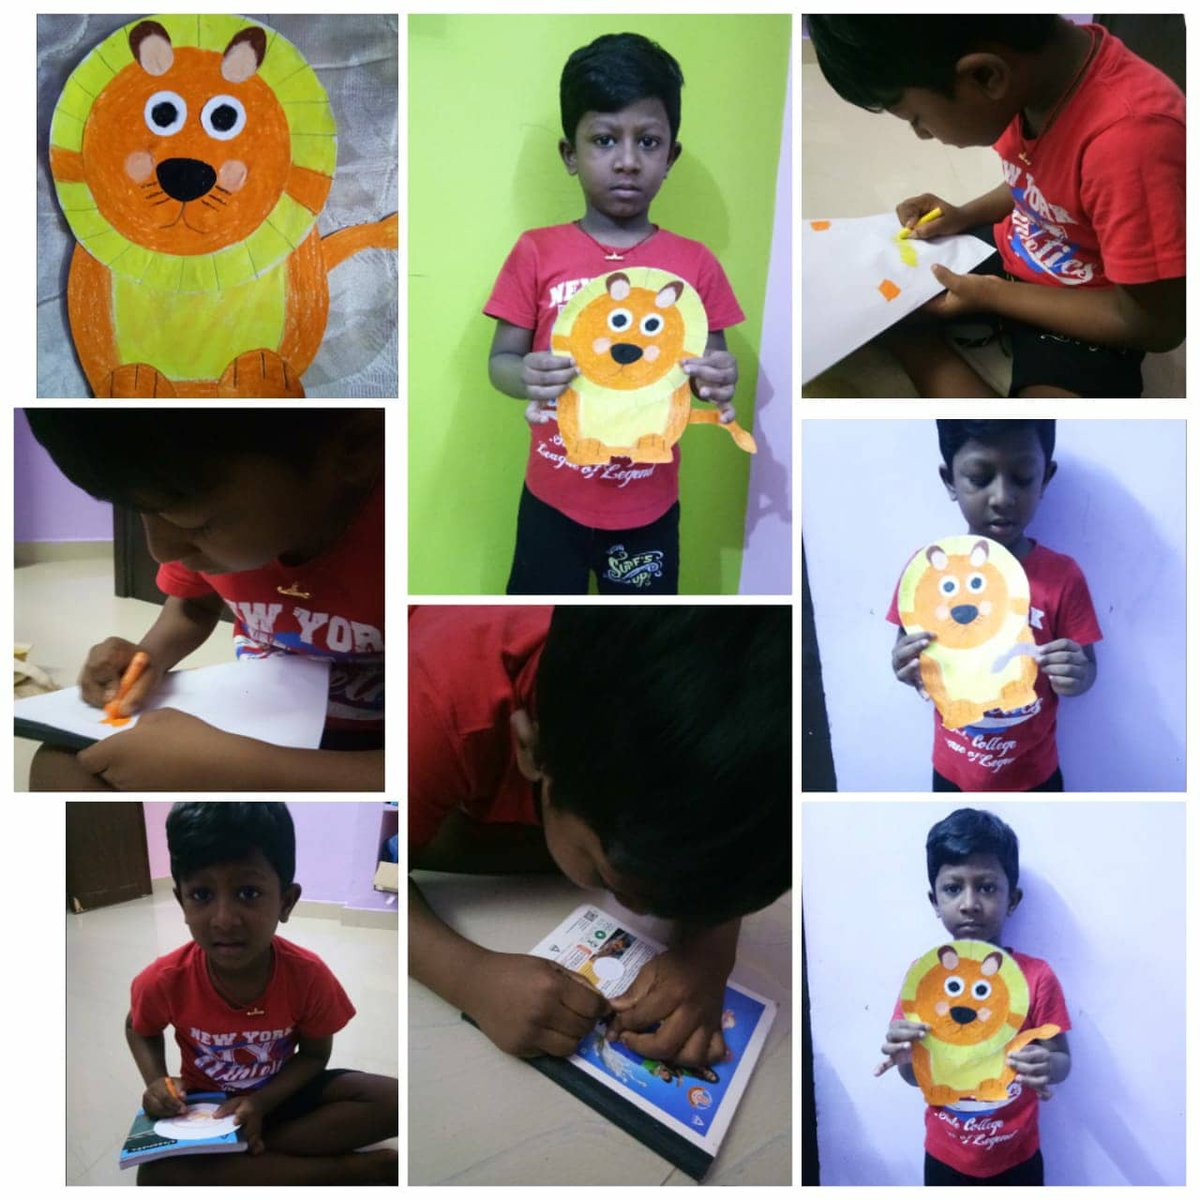 Painting is a way for children to convey ideas, express emotion, use their senses, explore color and in the process enjoy themselves. Painting can have a very calming effect.  #painting #arts #expression #students #KPRS #kindergarten #Kinderlounge #chennai #Kalorex  #MPS https://t.co/HRQ6syiU1R